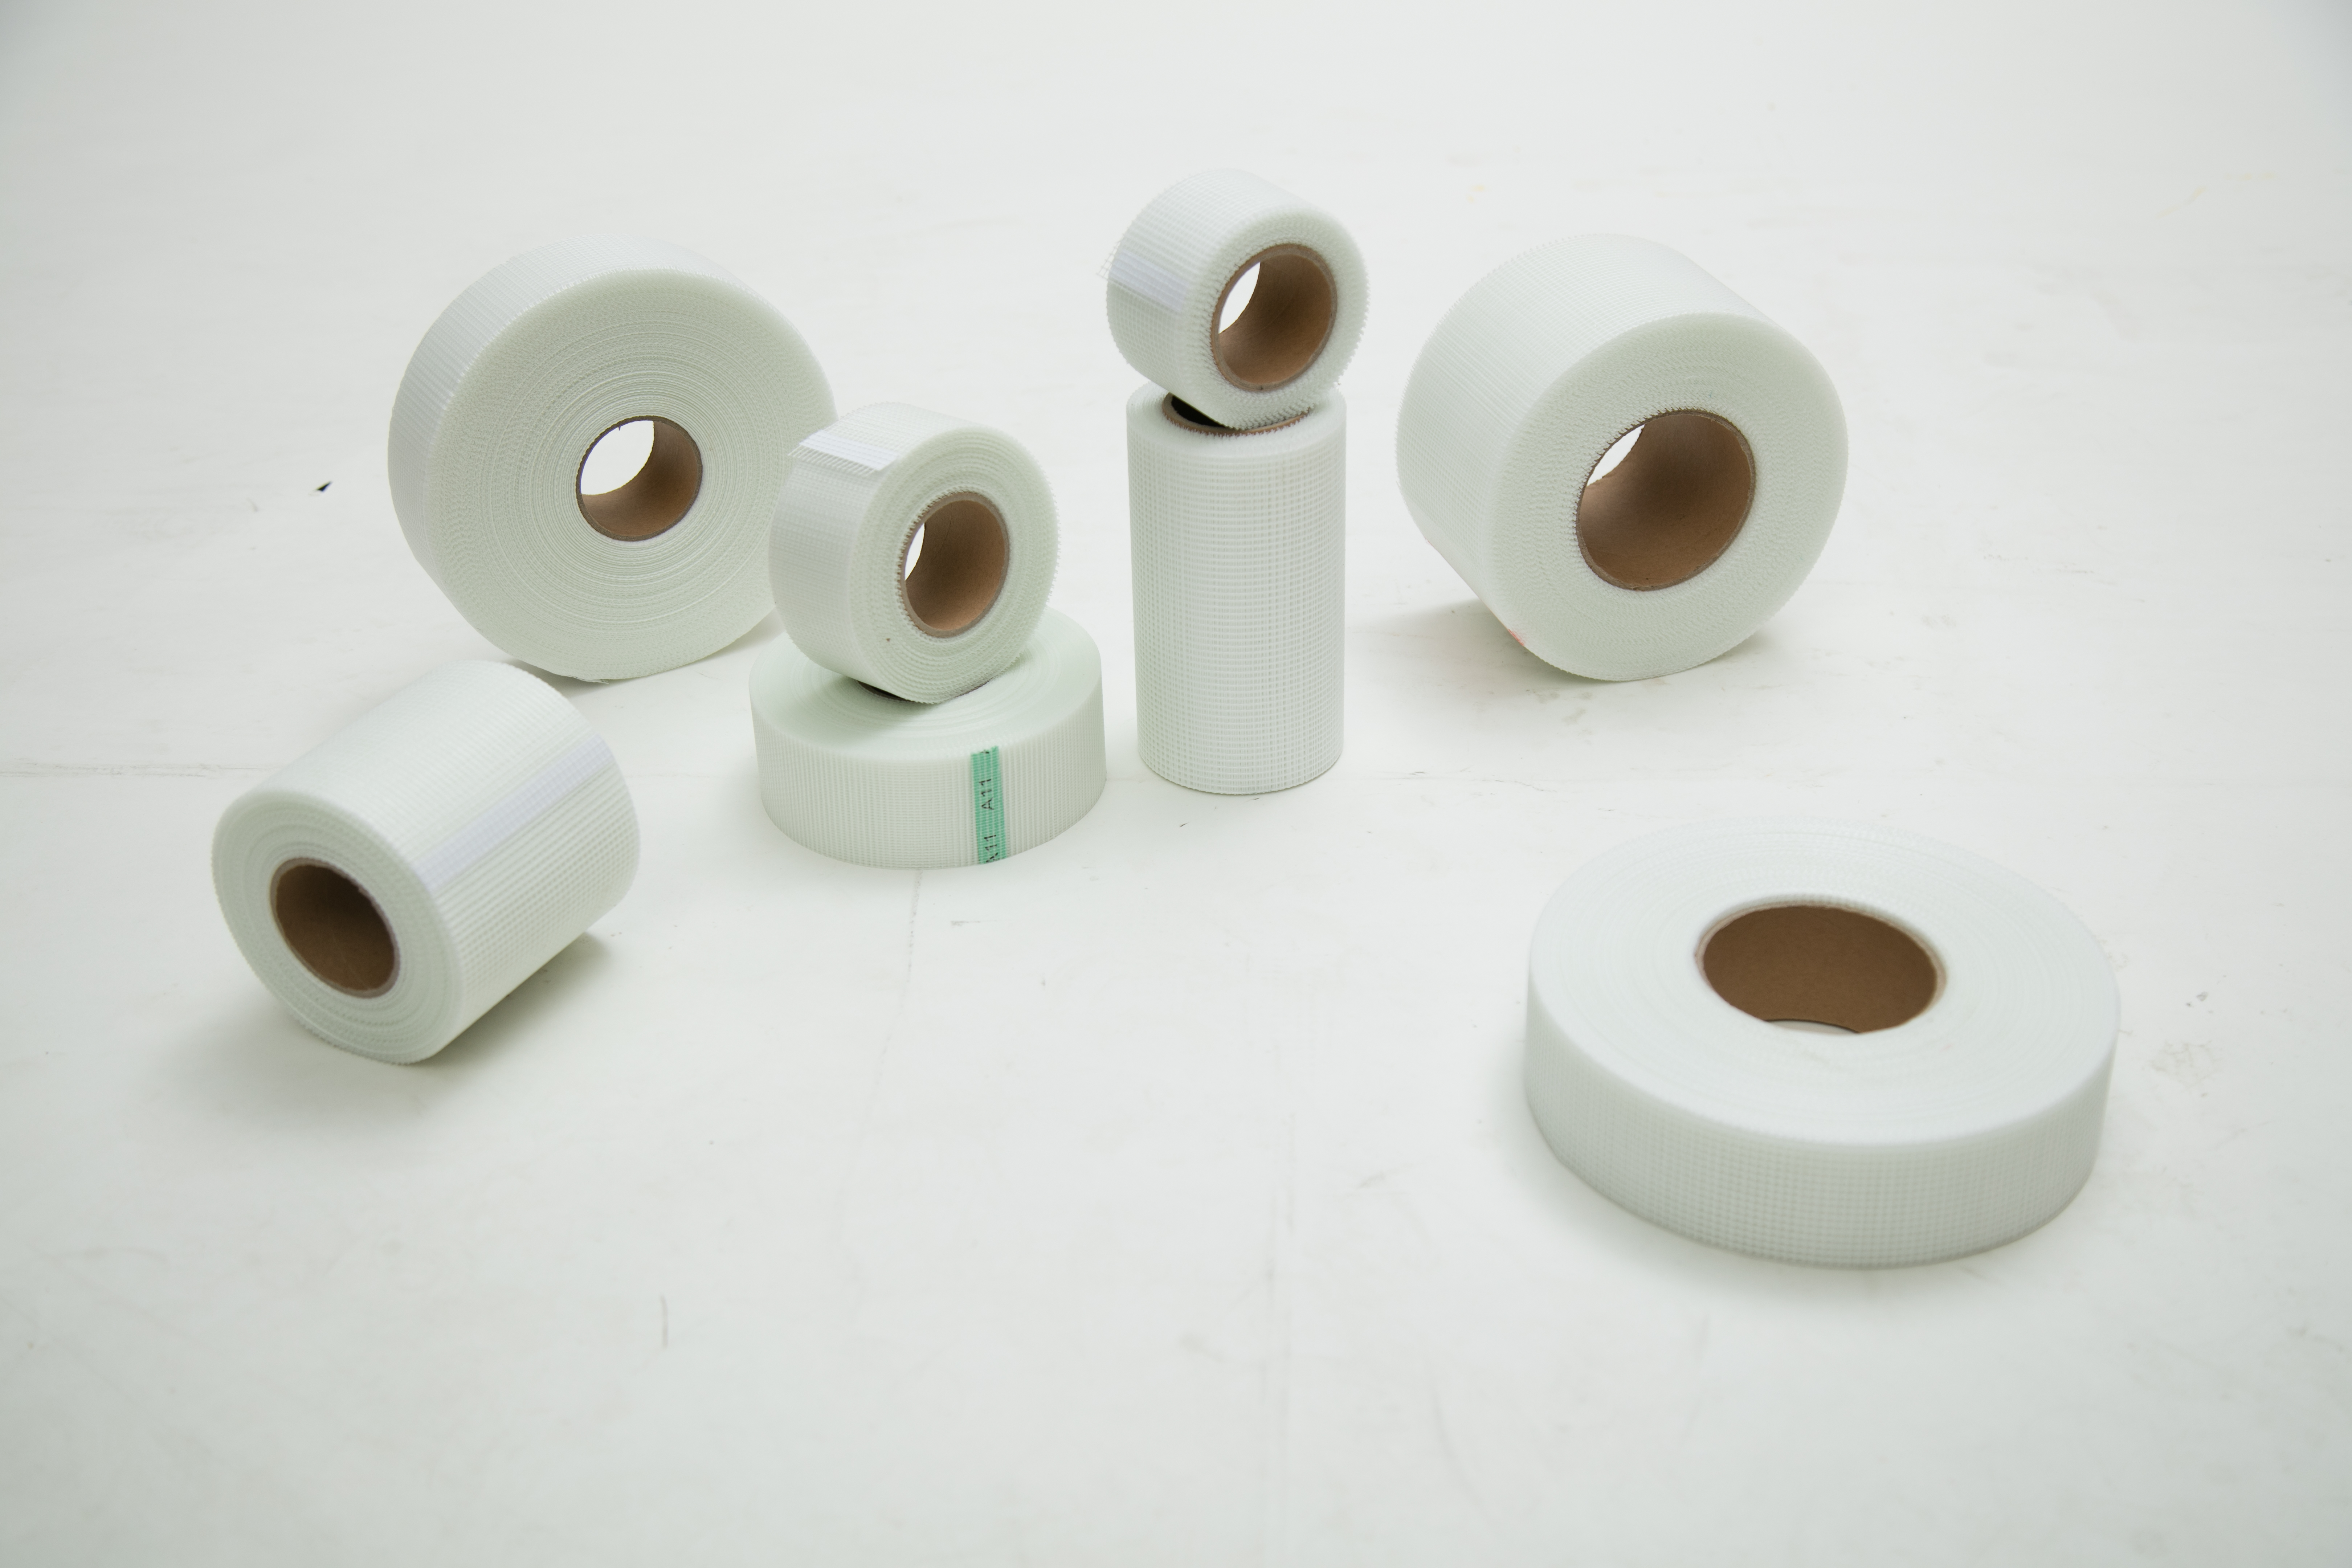 a03832cb5eb 首页 / Products / DRYWALL JOINTS & CORNER PRODUCTS